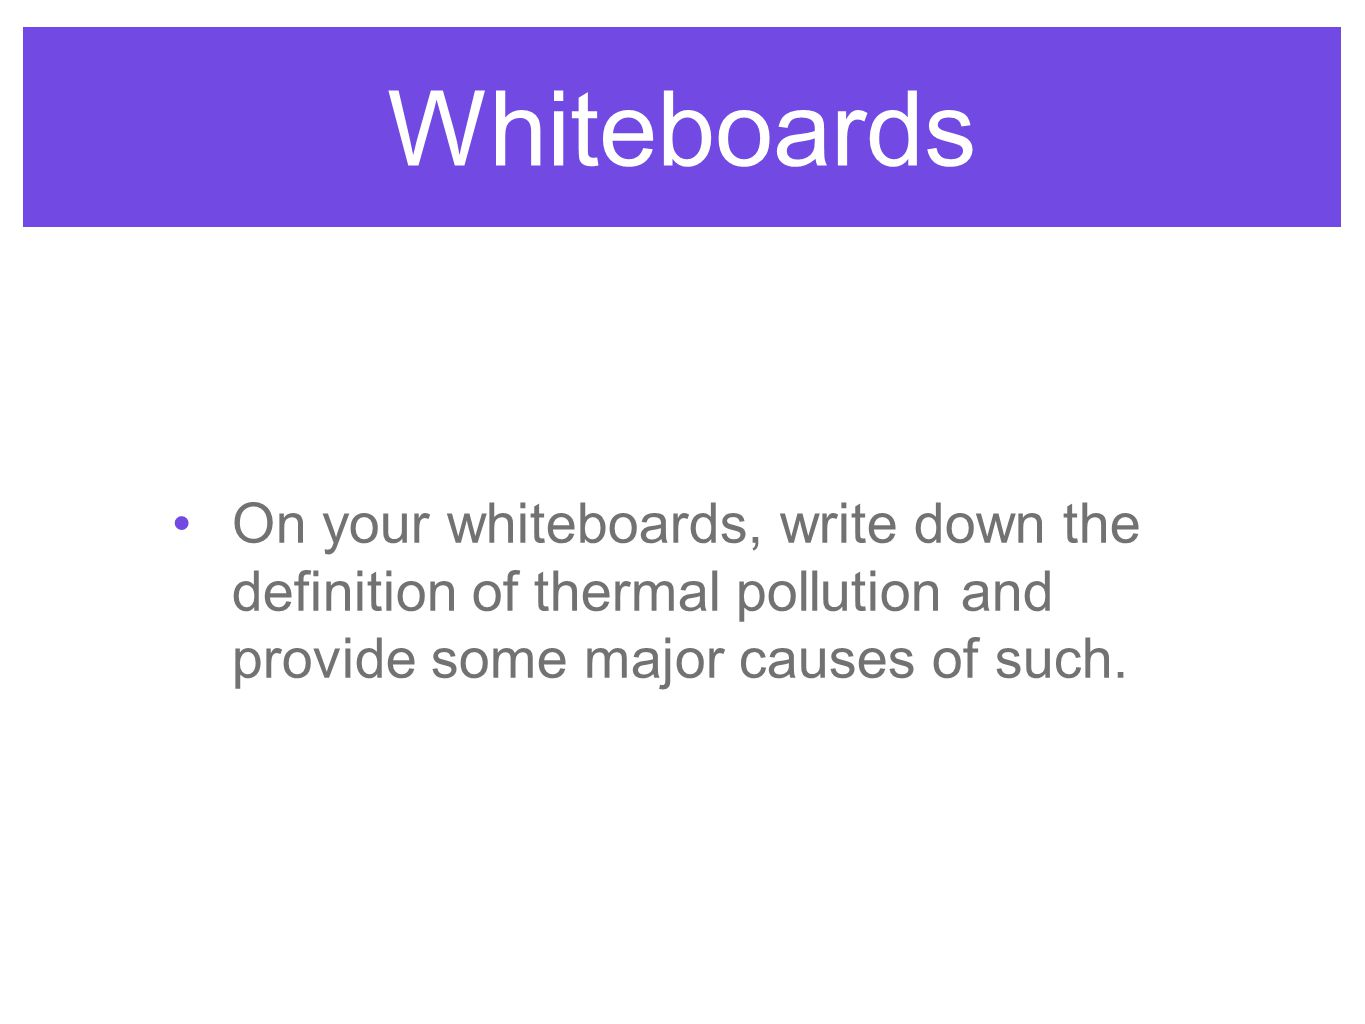 Whiteboards On your whiteboards, write down the definition of thermal pollution and provide some major causes of such.